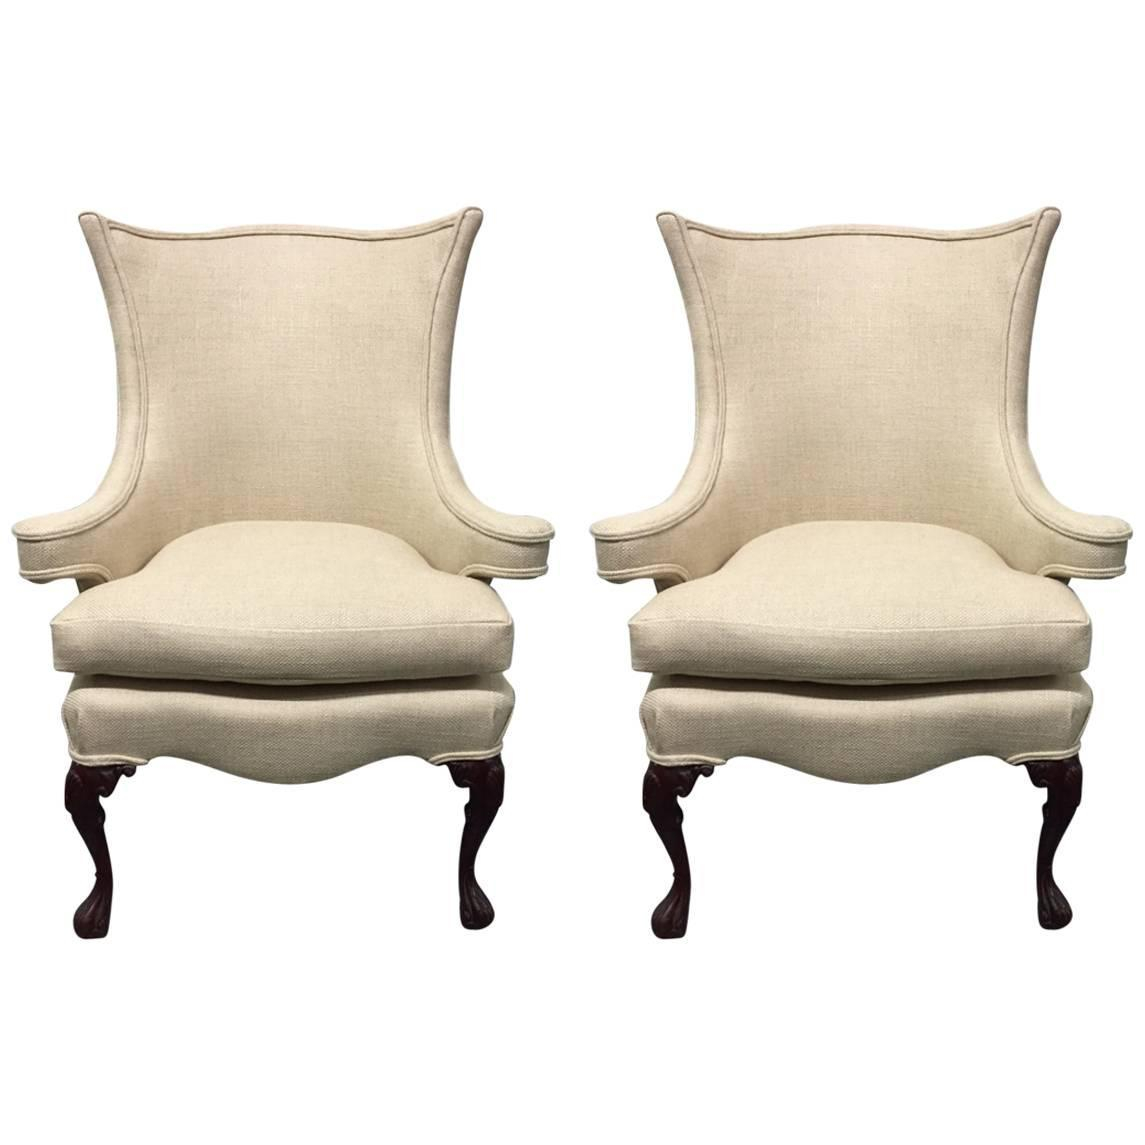 Queen Anne Wingback Chair Pair Of Queen Anne Style Wingback Chairs For Sale At 1stdibs